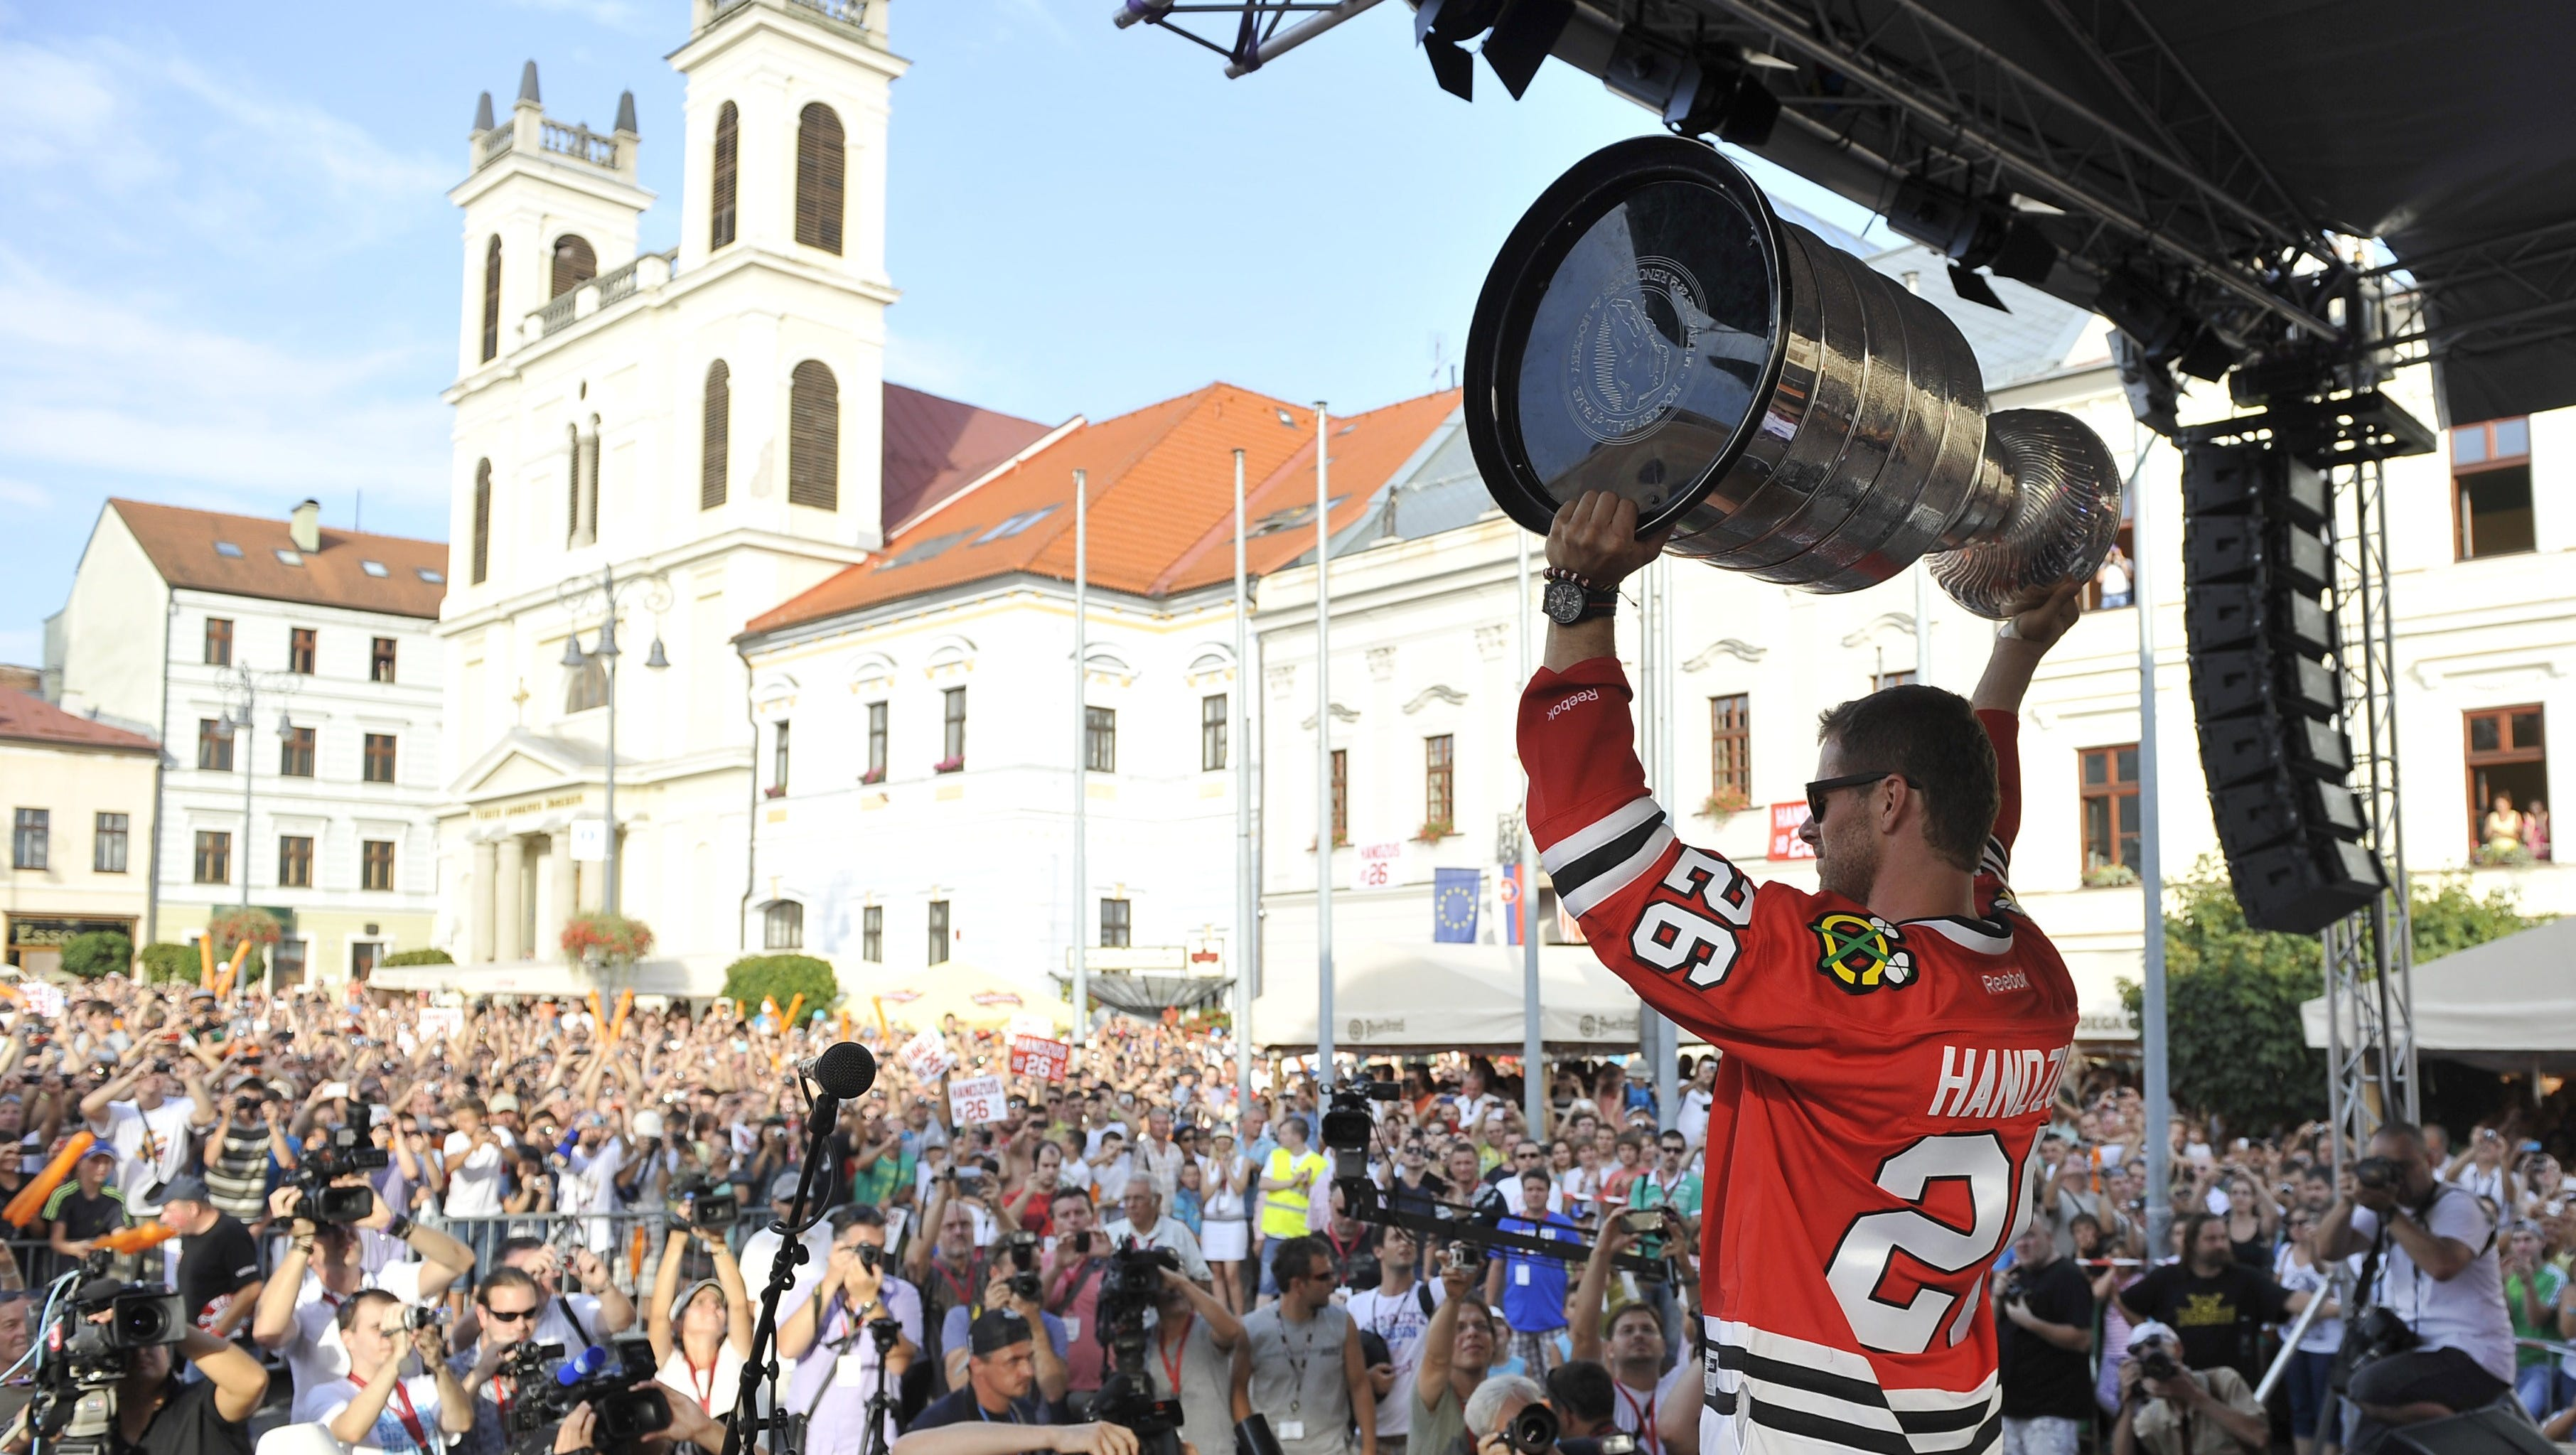 Michal Handzus lifts the Stanley Cup after arriving in the main square of Banska Bystrica, Slovakia. Reports says 10,000 people were in the crowd.